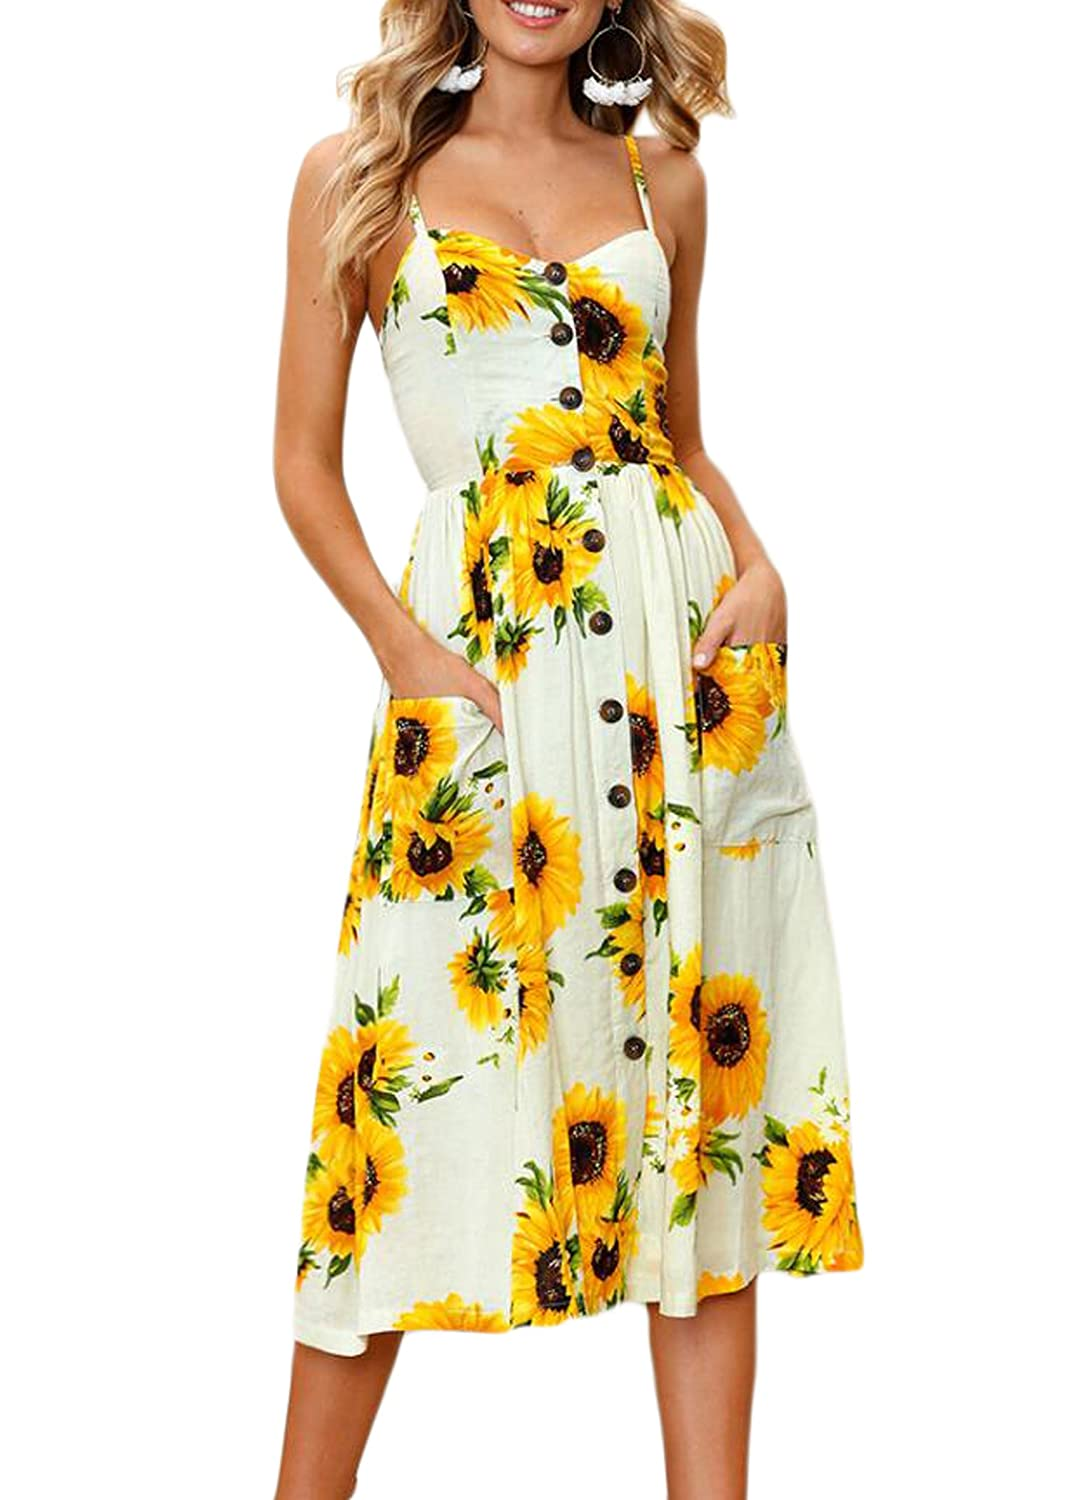 2d251673e4a0 Odosalii Women's Floral Spaghetti Strap Button Down Midi Dress Summer with  Pockets Yellow at Amazon Women's Clothing store: